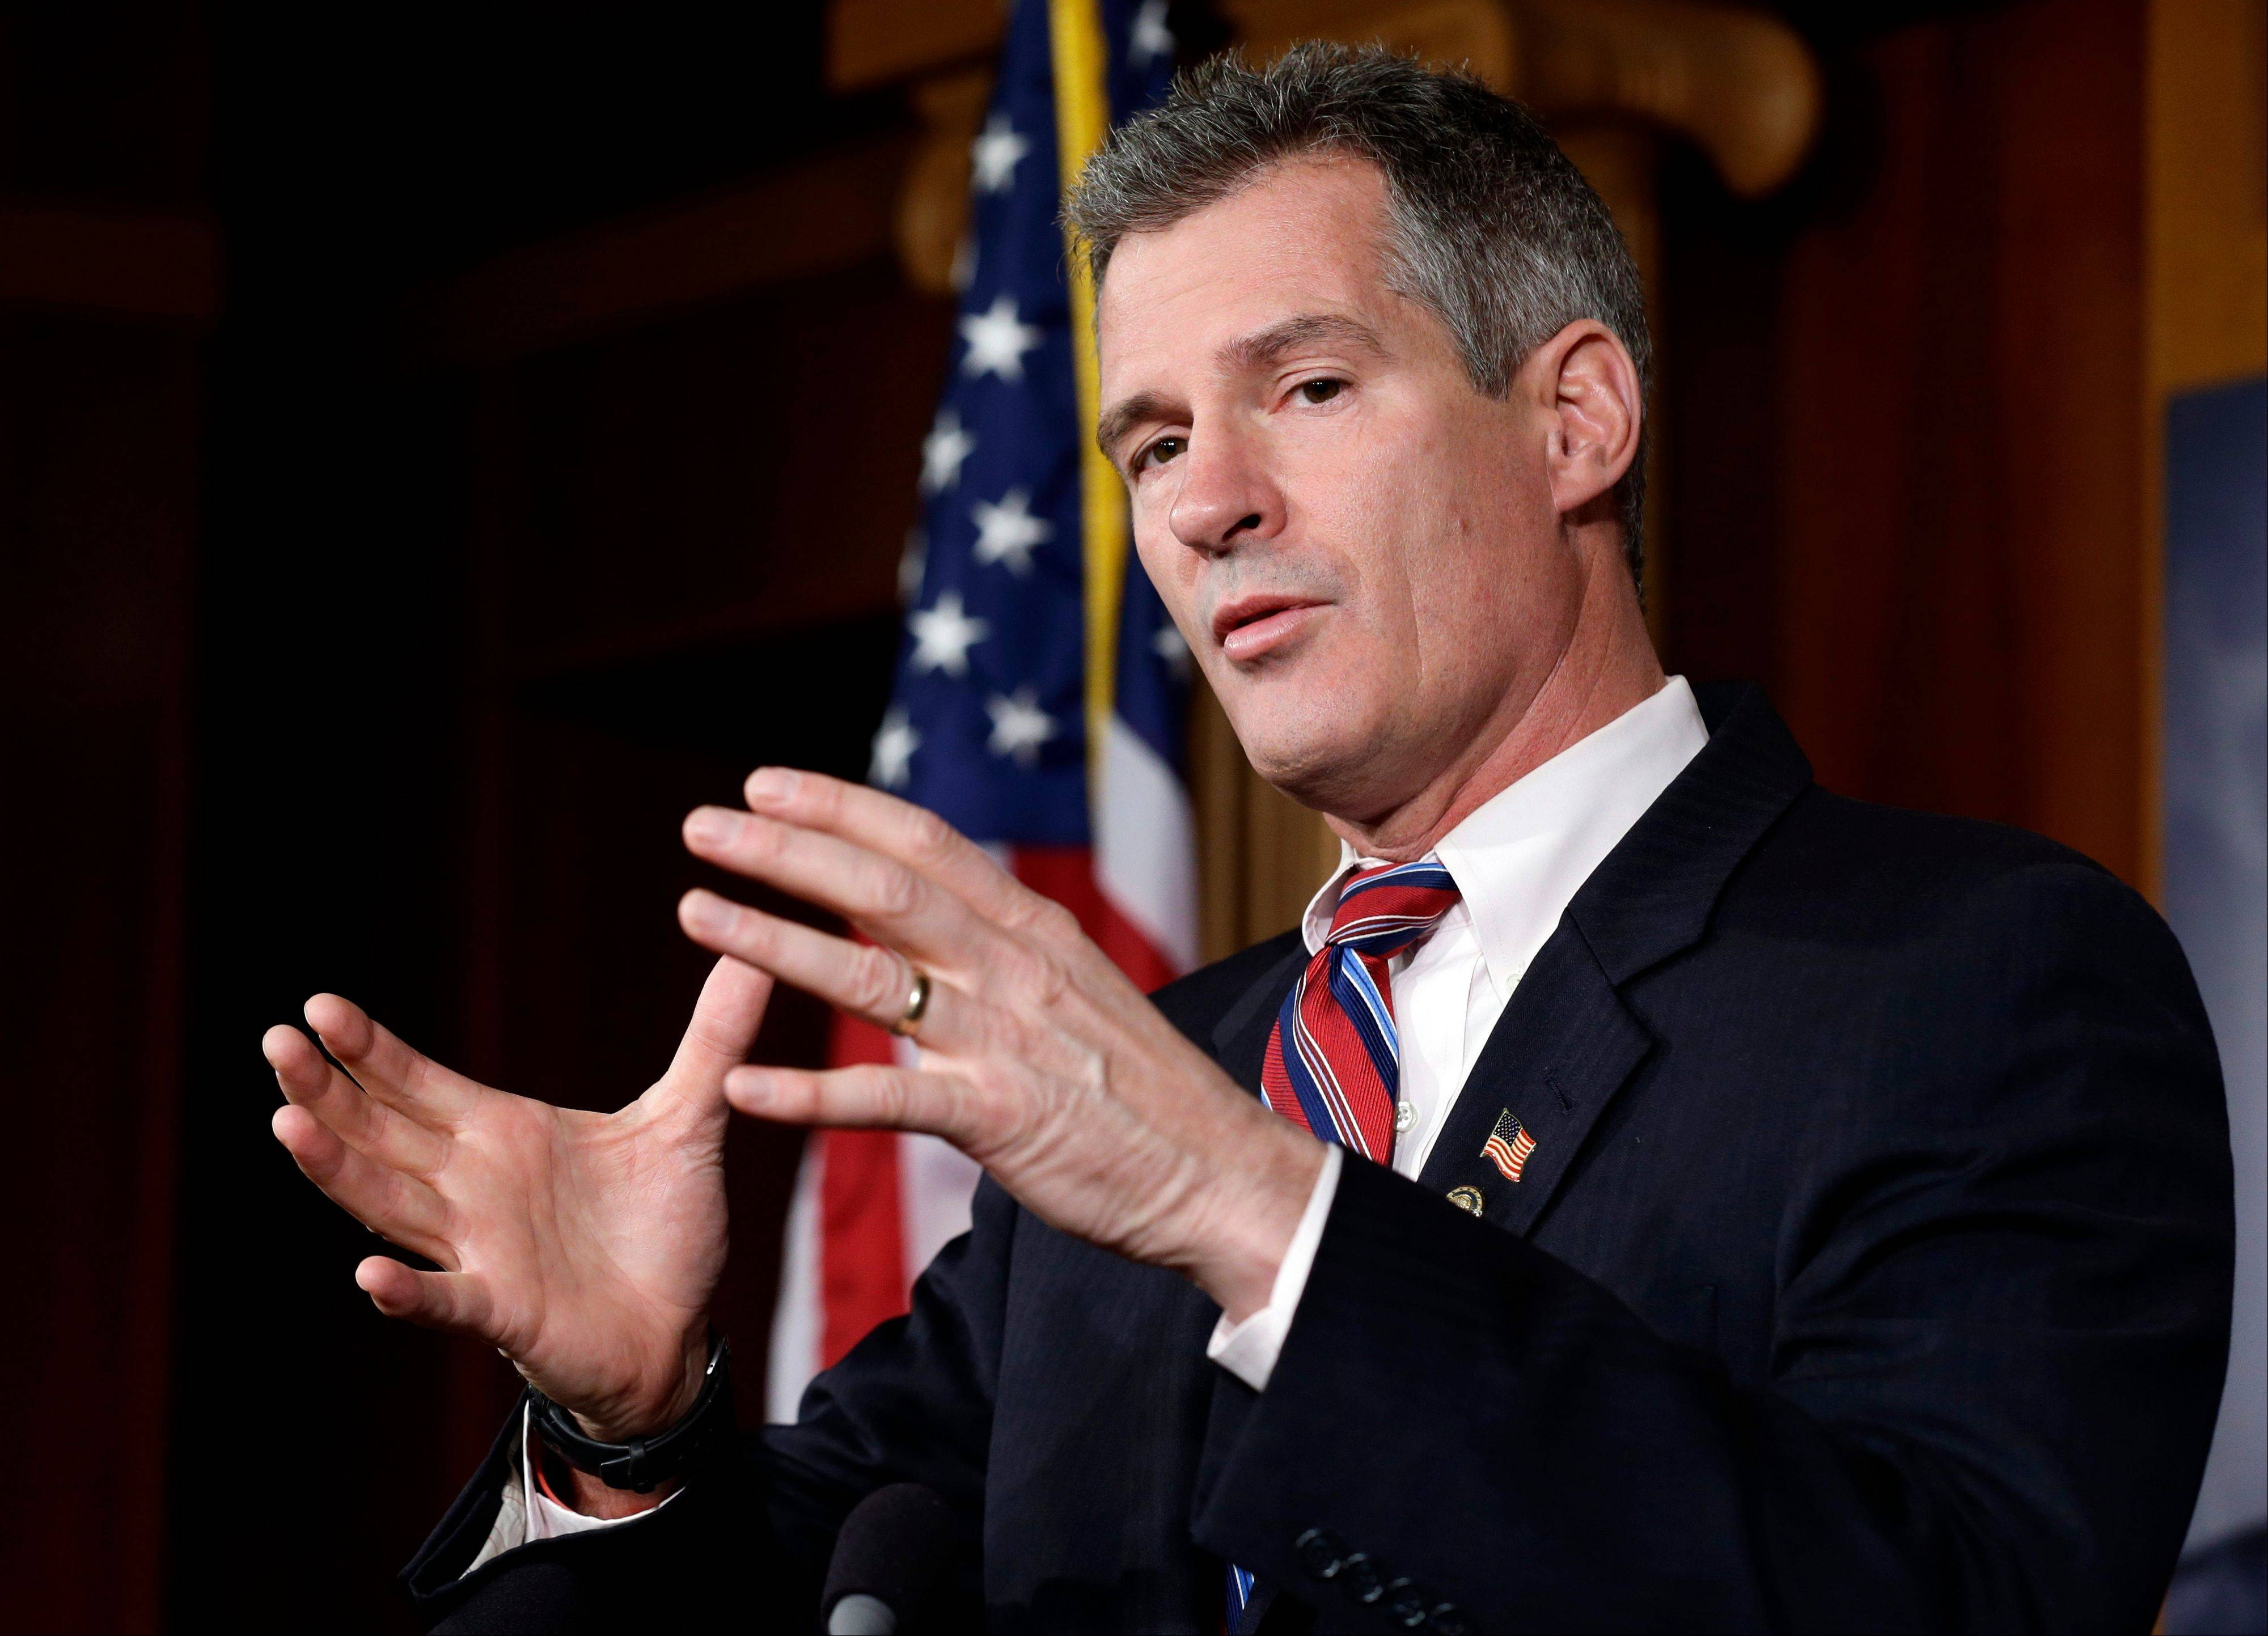 Former GOP Sen. Scott Brown of Massachusetts speaks during a media availability, on Capitol Hill in Washington.